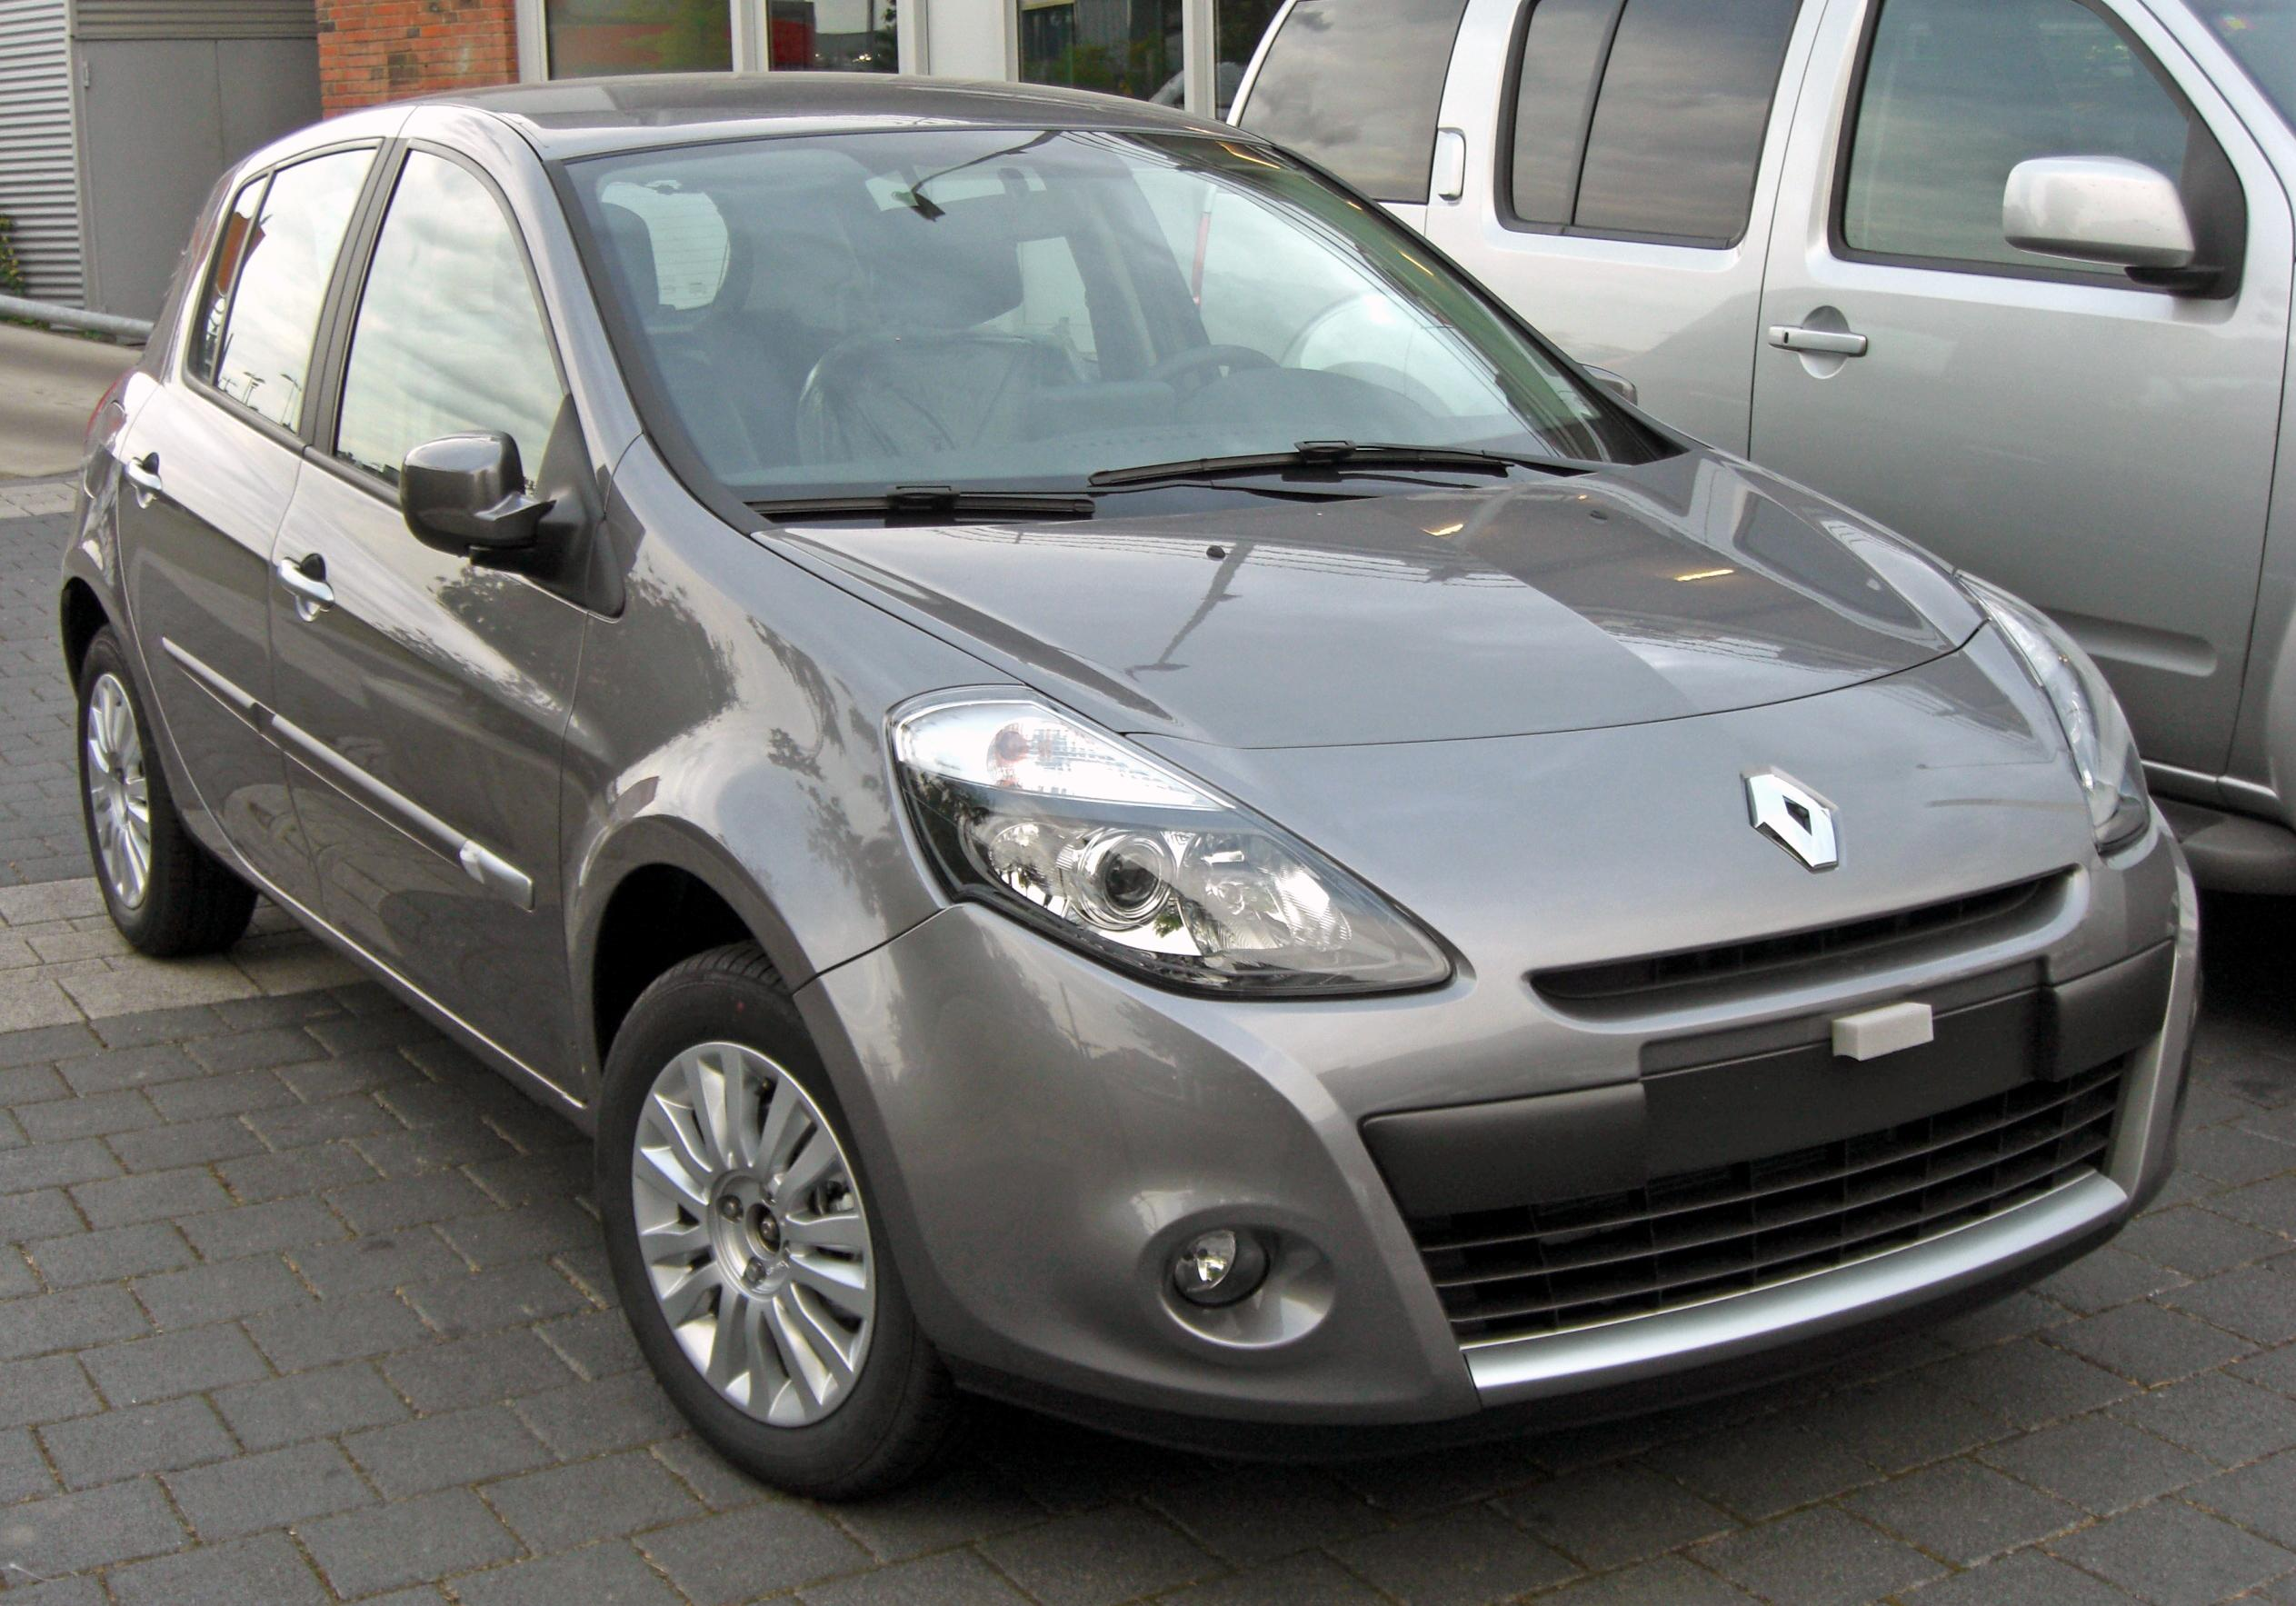 fichier renault clio iii facelift 20090603 front jpg wikip dia. Black Bedroom Furniture Sets. Home Design Ideas